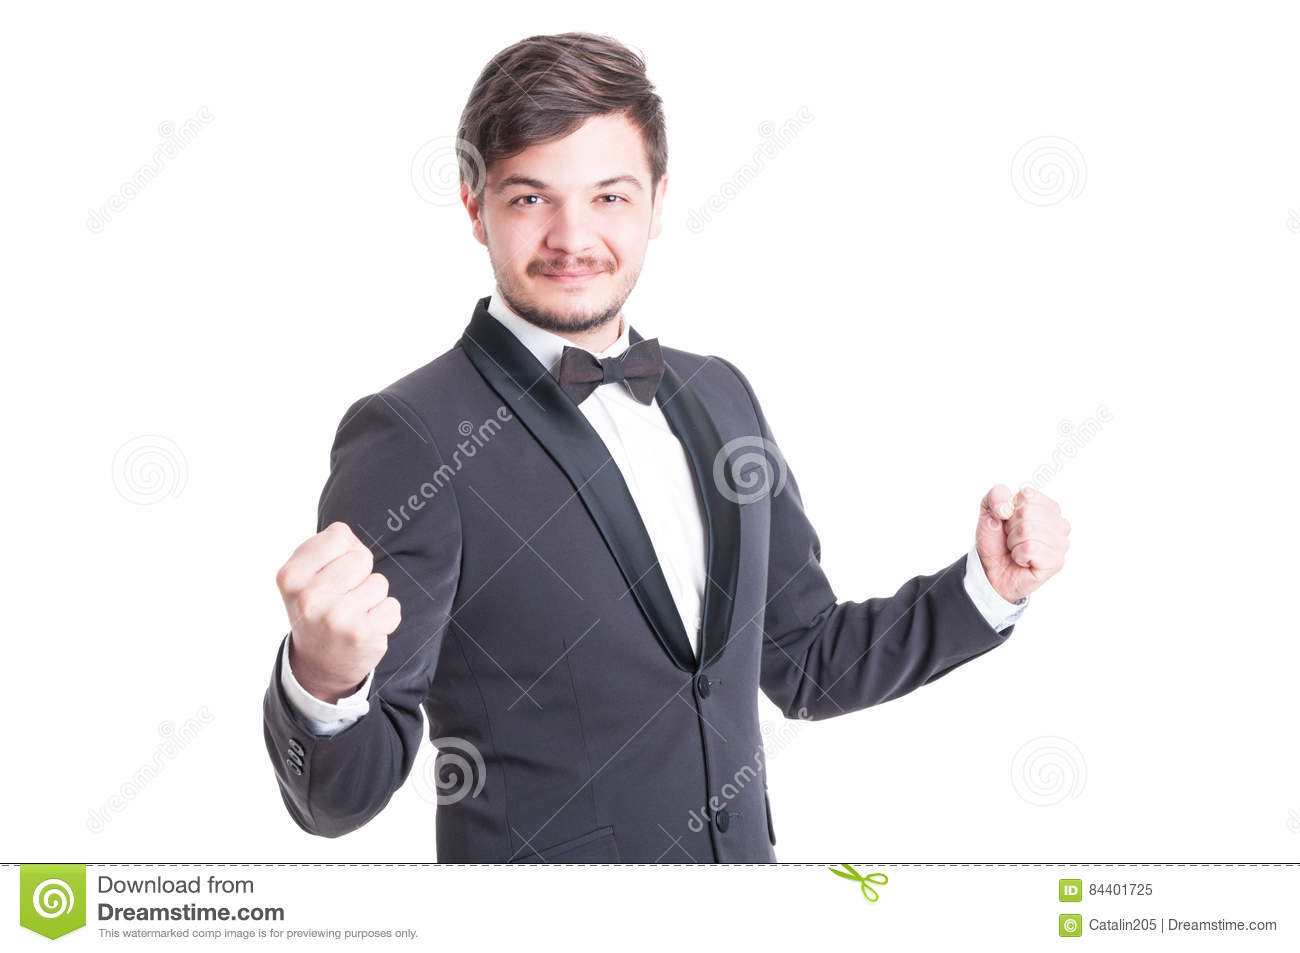 Handsome man wearing tuxedo and bowtie making success gesture